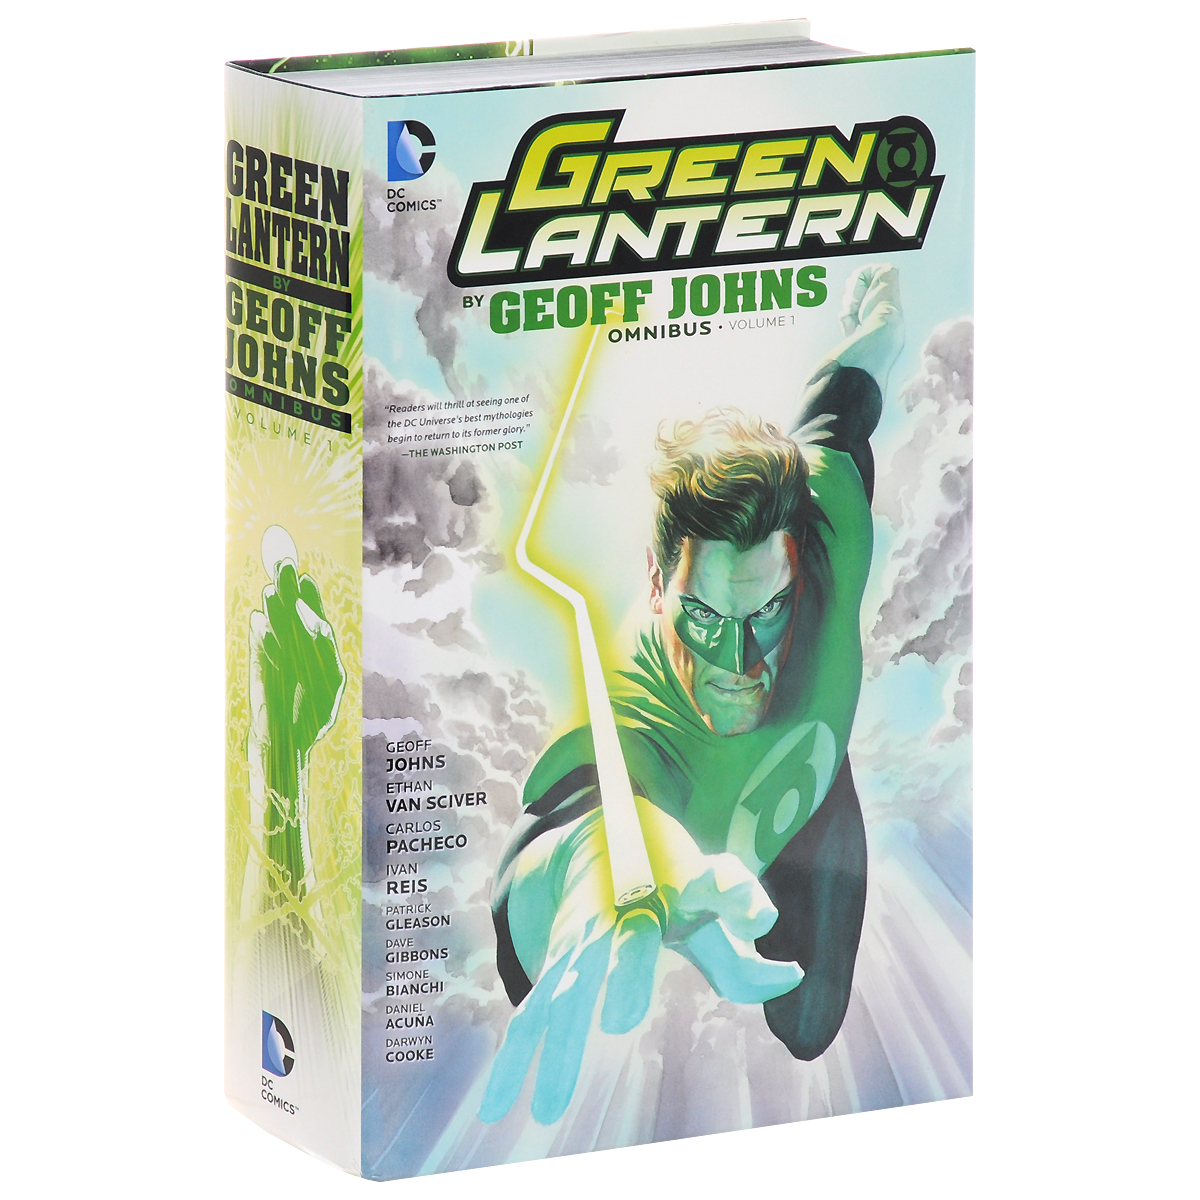 Green Lantern by Geoff Johns: Omnibus: Volume 1 hollywood curves invisible thong телесные невидимые трусики стринги размер m l